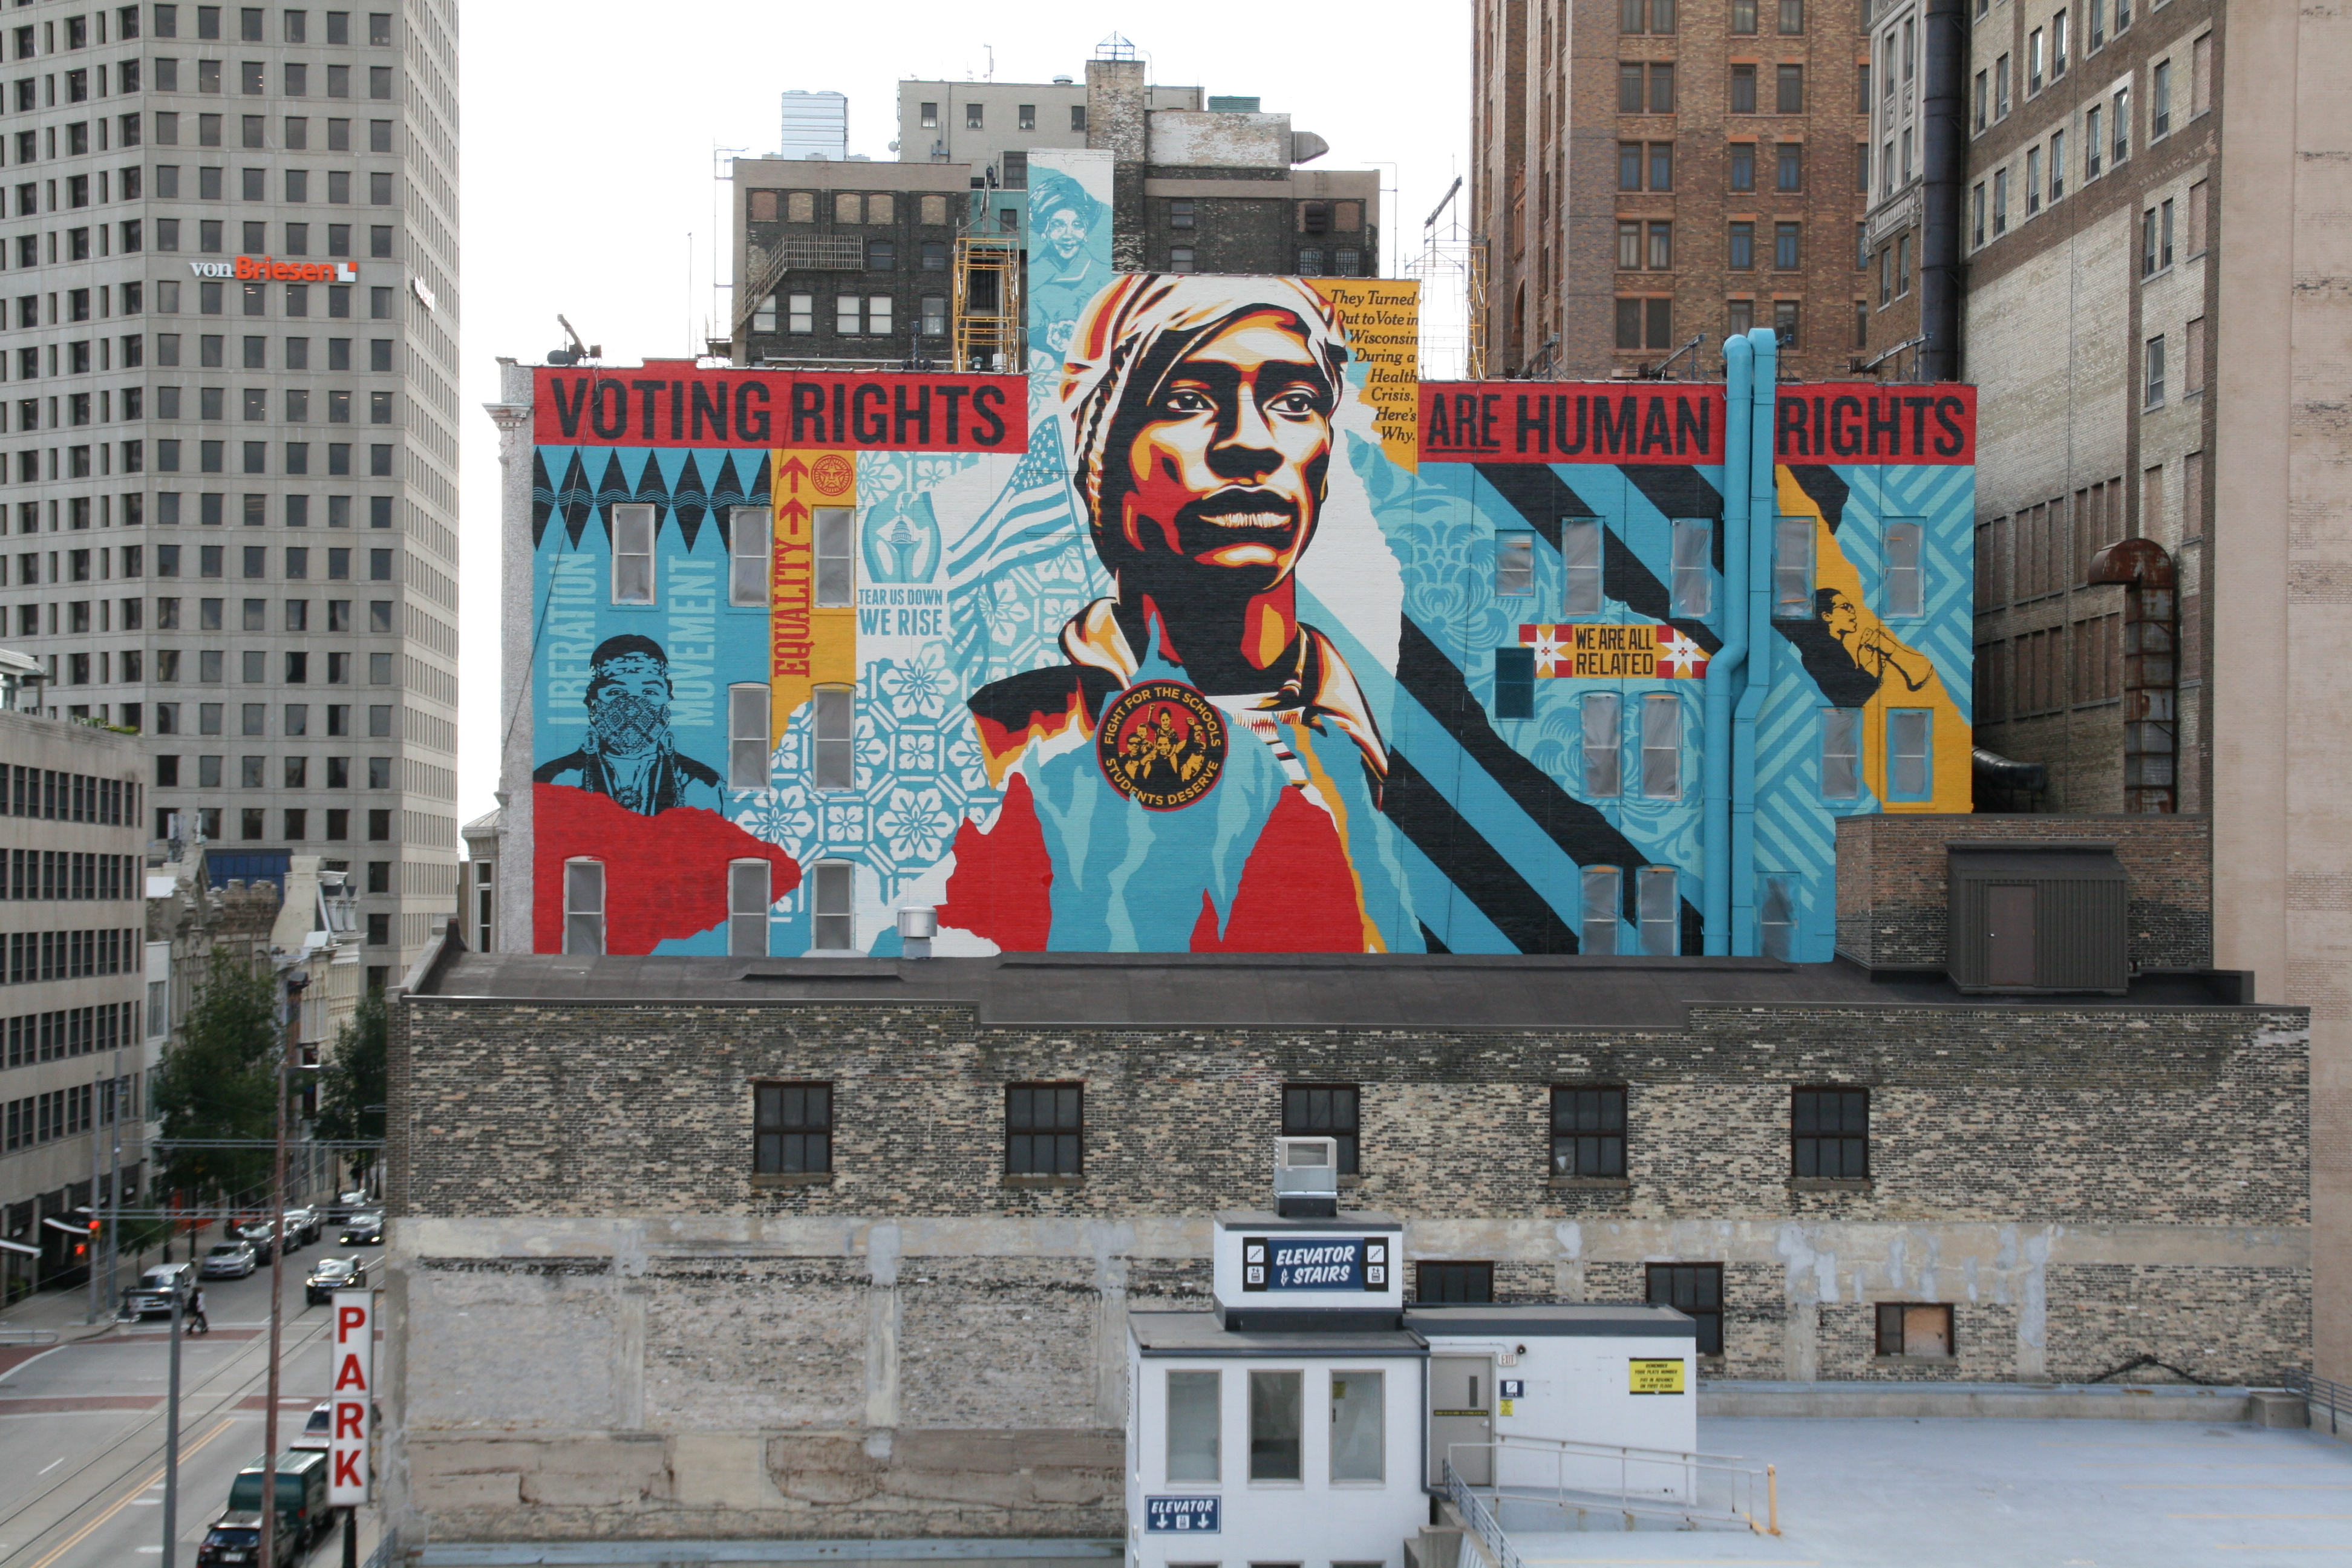 """""""Voting Rights are Human Rights"""" mural by Shepard Fairey. Photo by Jeramey Jannene."""